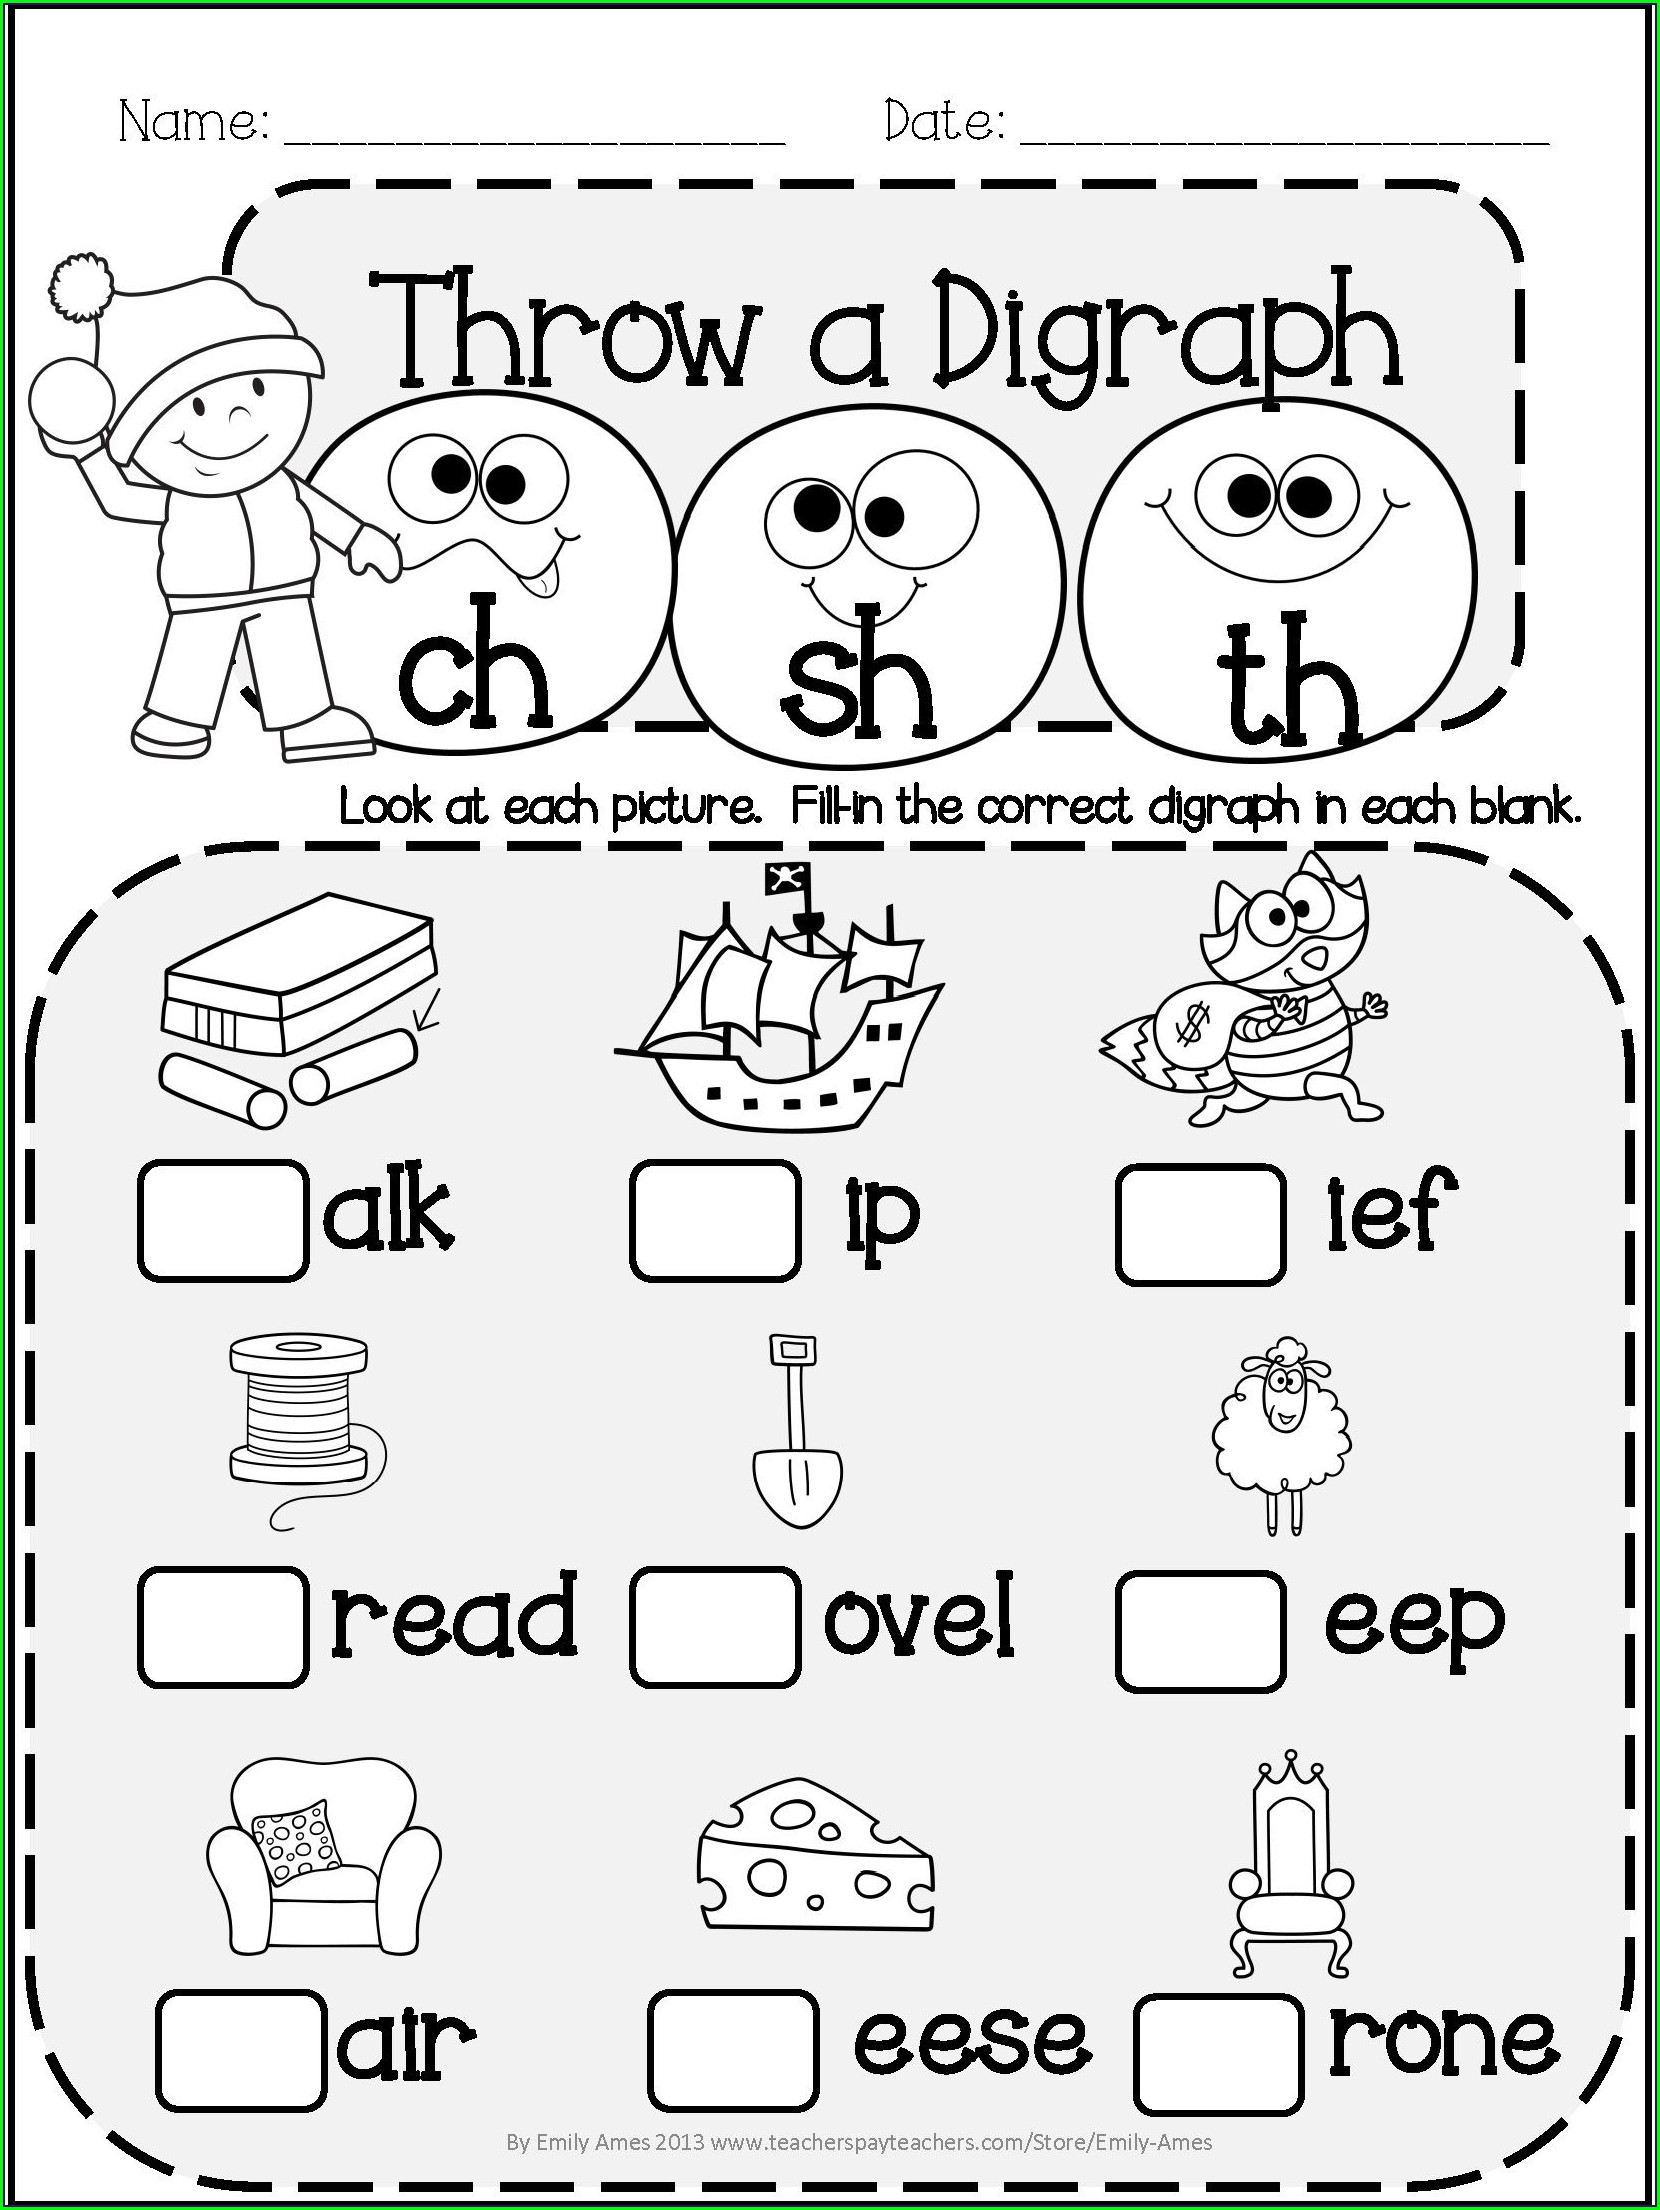 Free Printable Math Worksheets For Kindergarten Addition And Subtraction